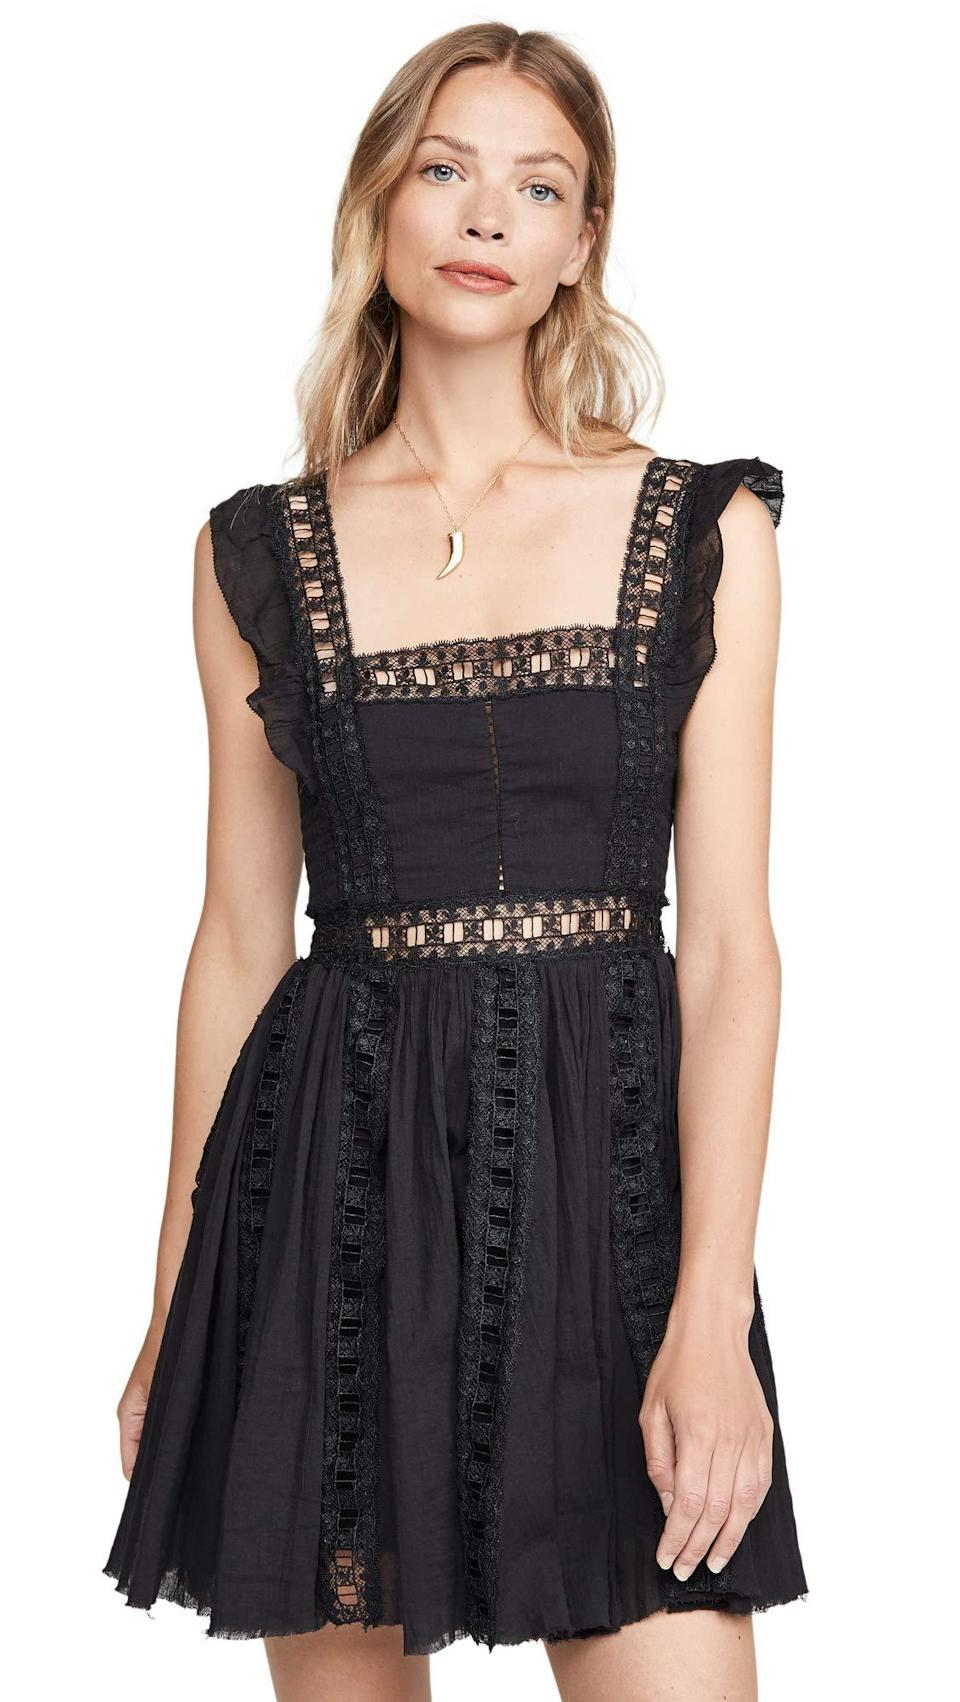 "<br><br><strong>Free People</strong> Verona Dress, $, available at <a href=""https://amzn.to/370qgVe"" rel=""nofollow noopener"" target=""_blank"" data-ylk=""slk:Amazon Fashion"" class=""link rapid-noclick-resp"">Amazon Fashion</a>"